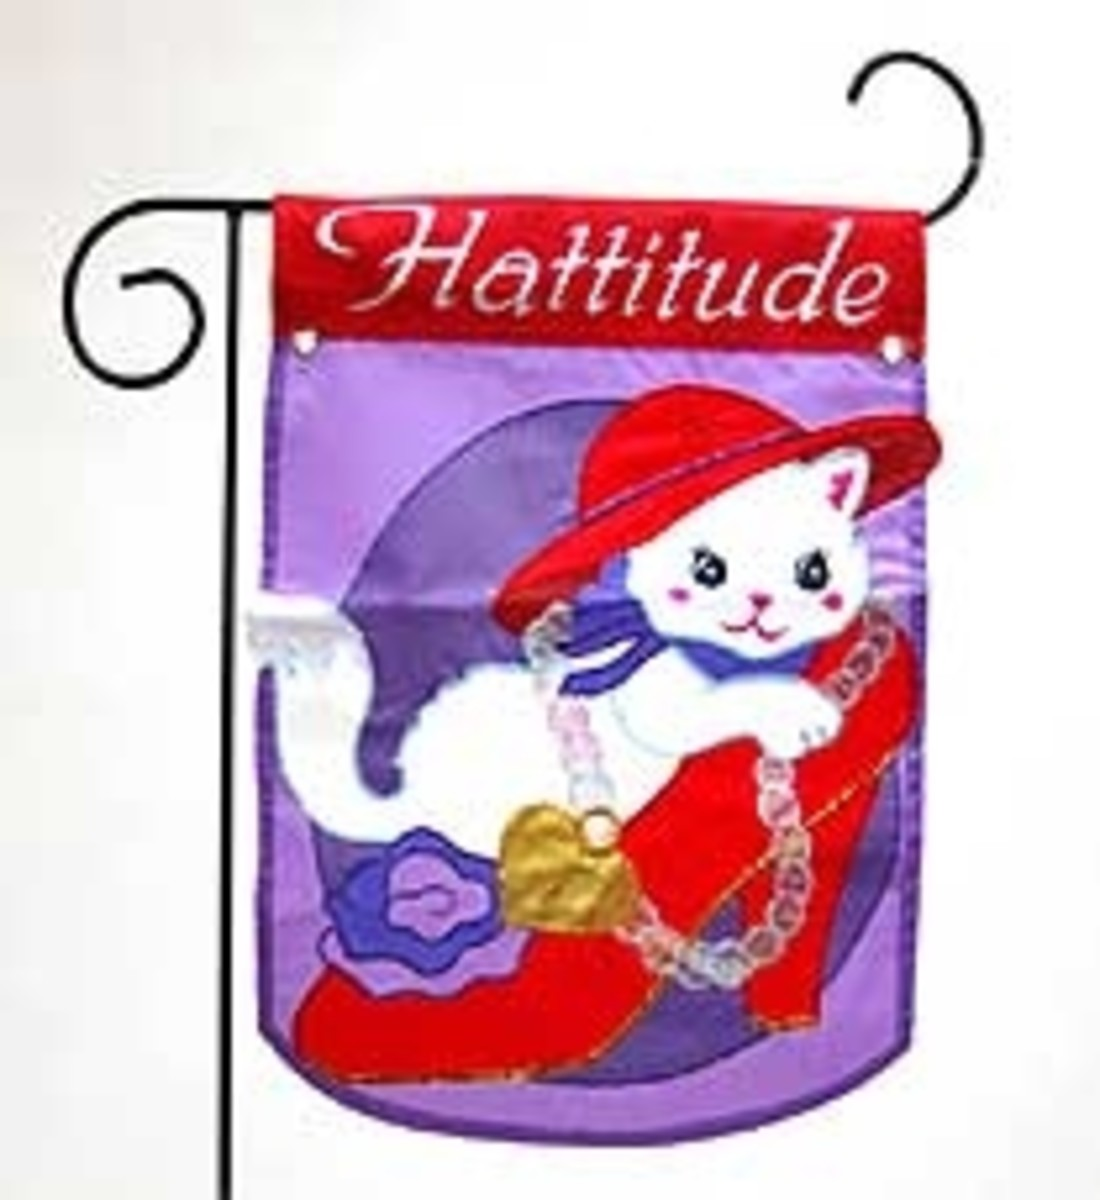 Get some red hat jewelry and hand-sewn lavender scented goods to show your red hat attitude in Hubbard, Ohio